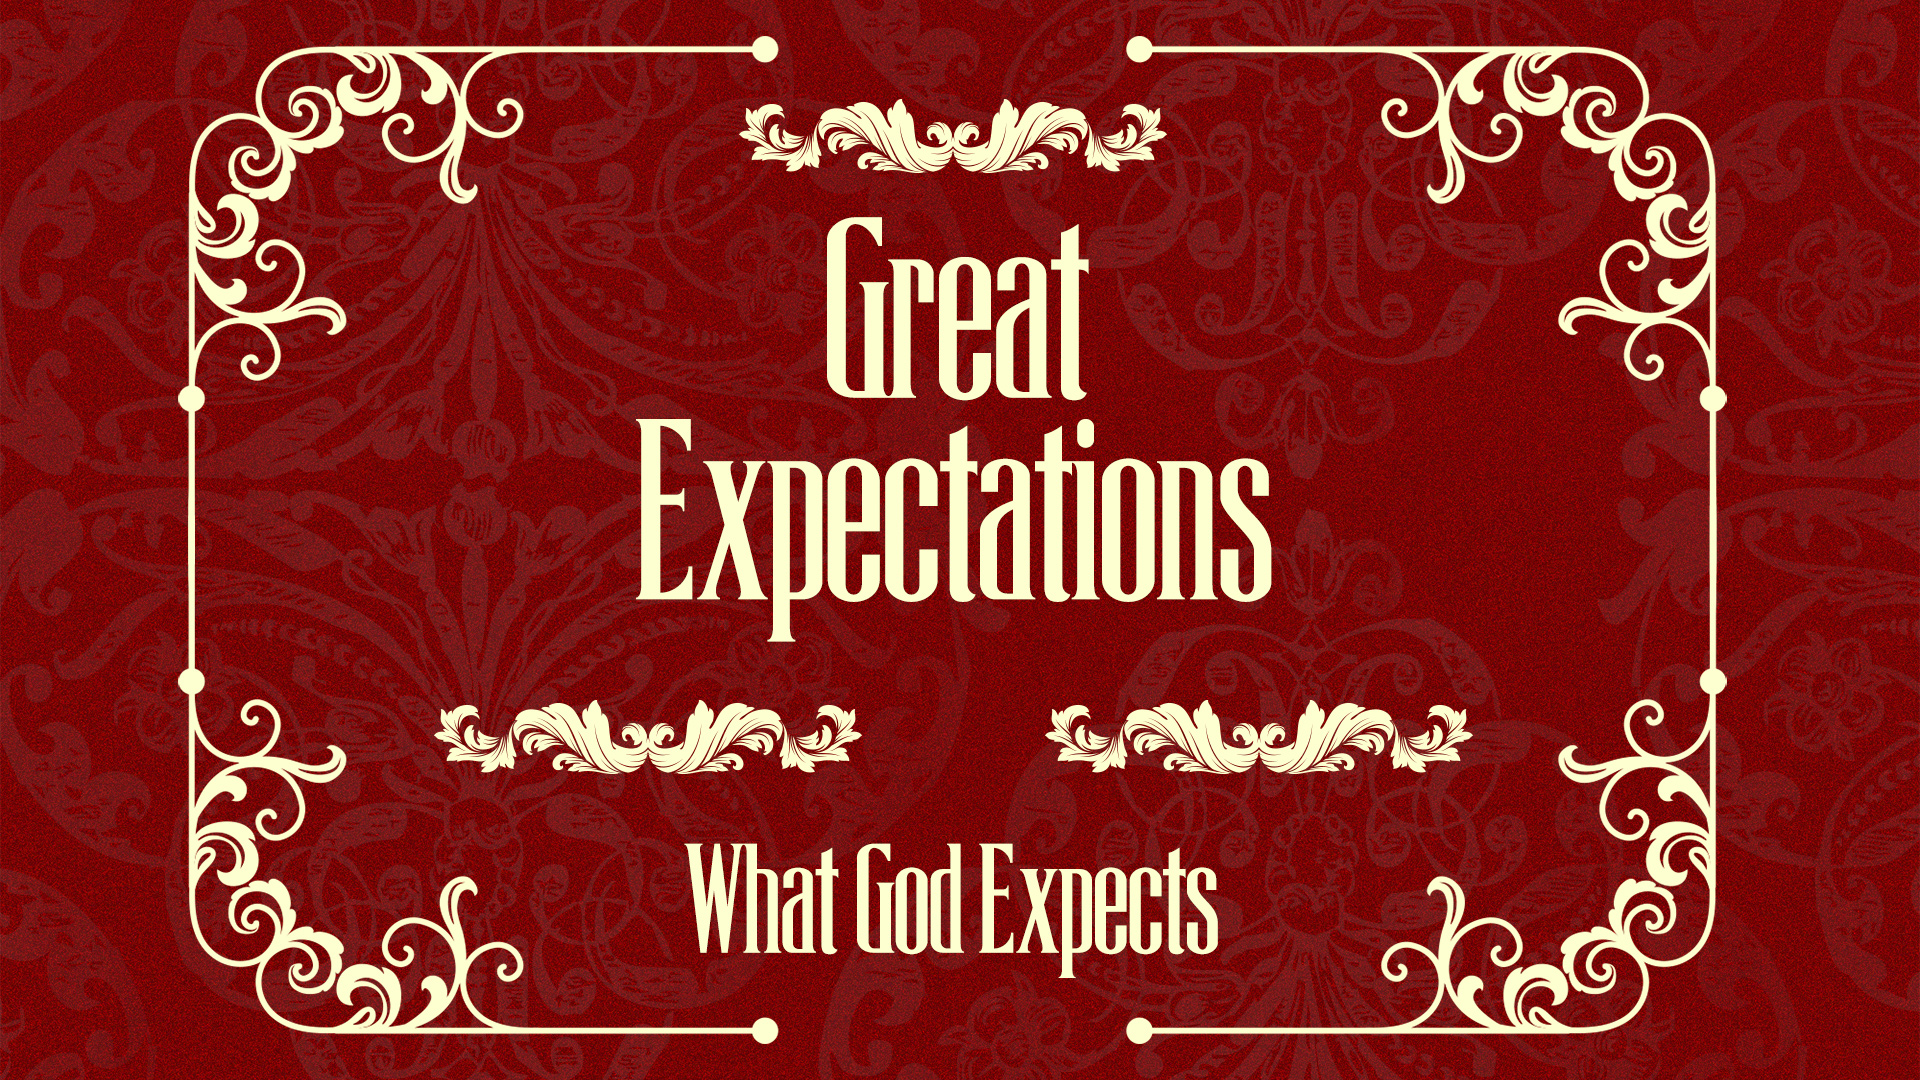 Great Expectations (2014)